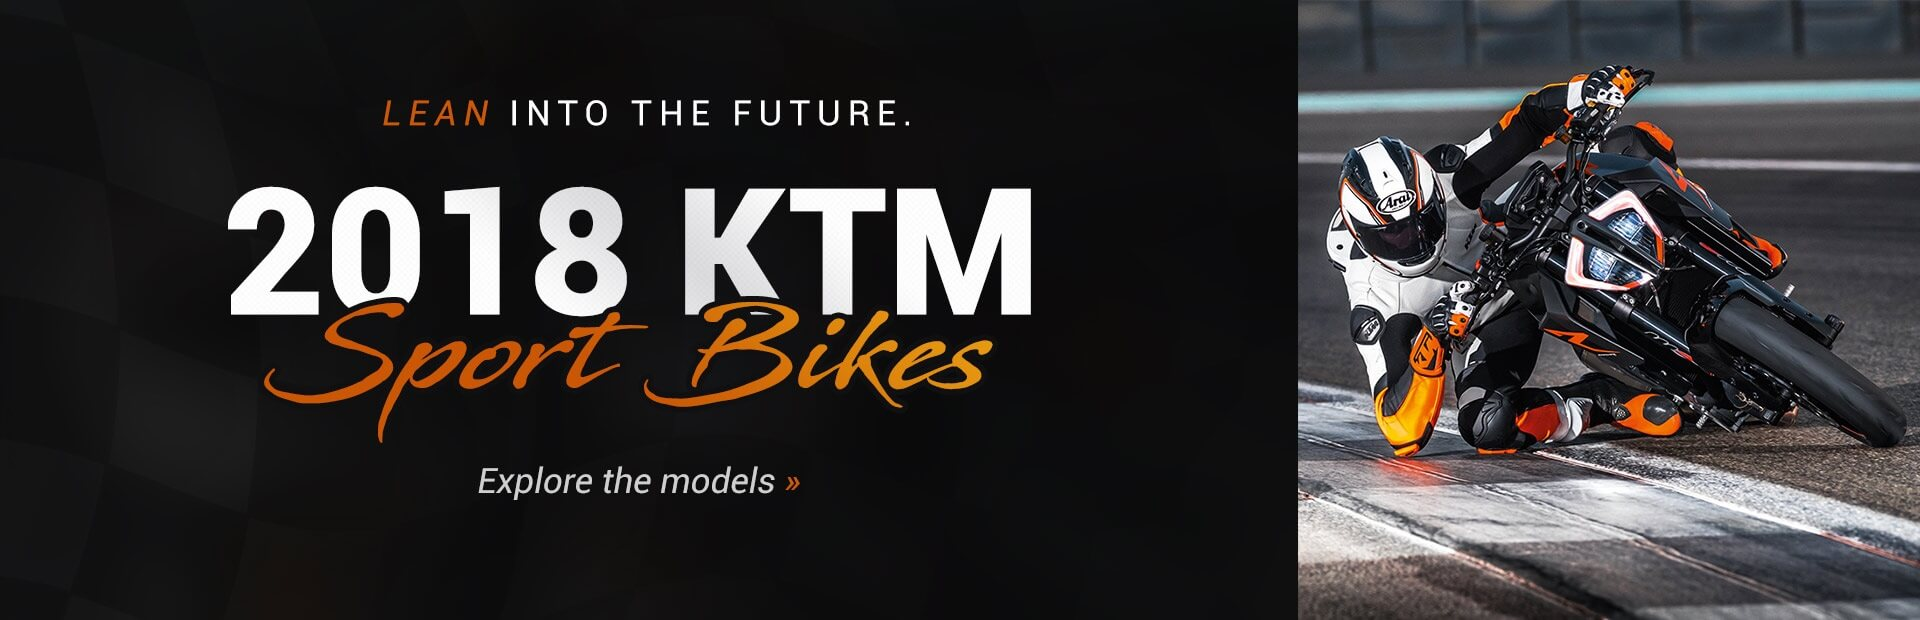 2018 KTM Sport Bikes: Click here to view the models.